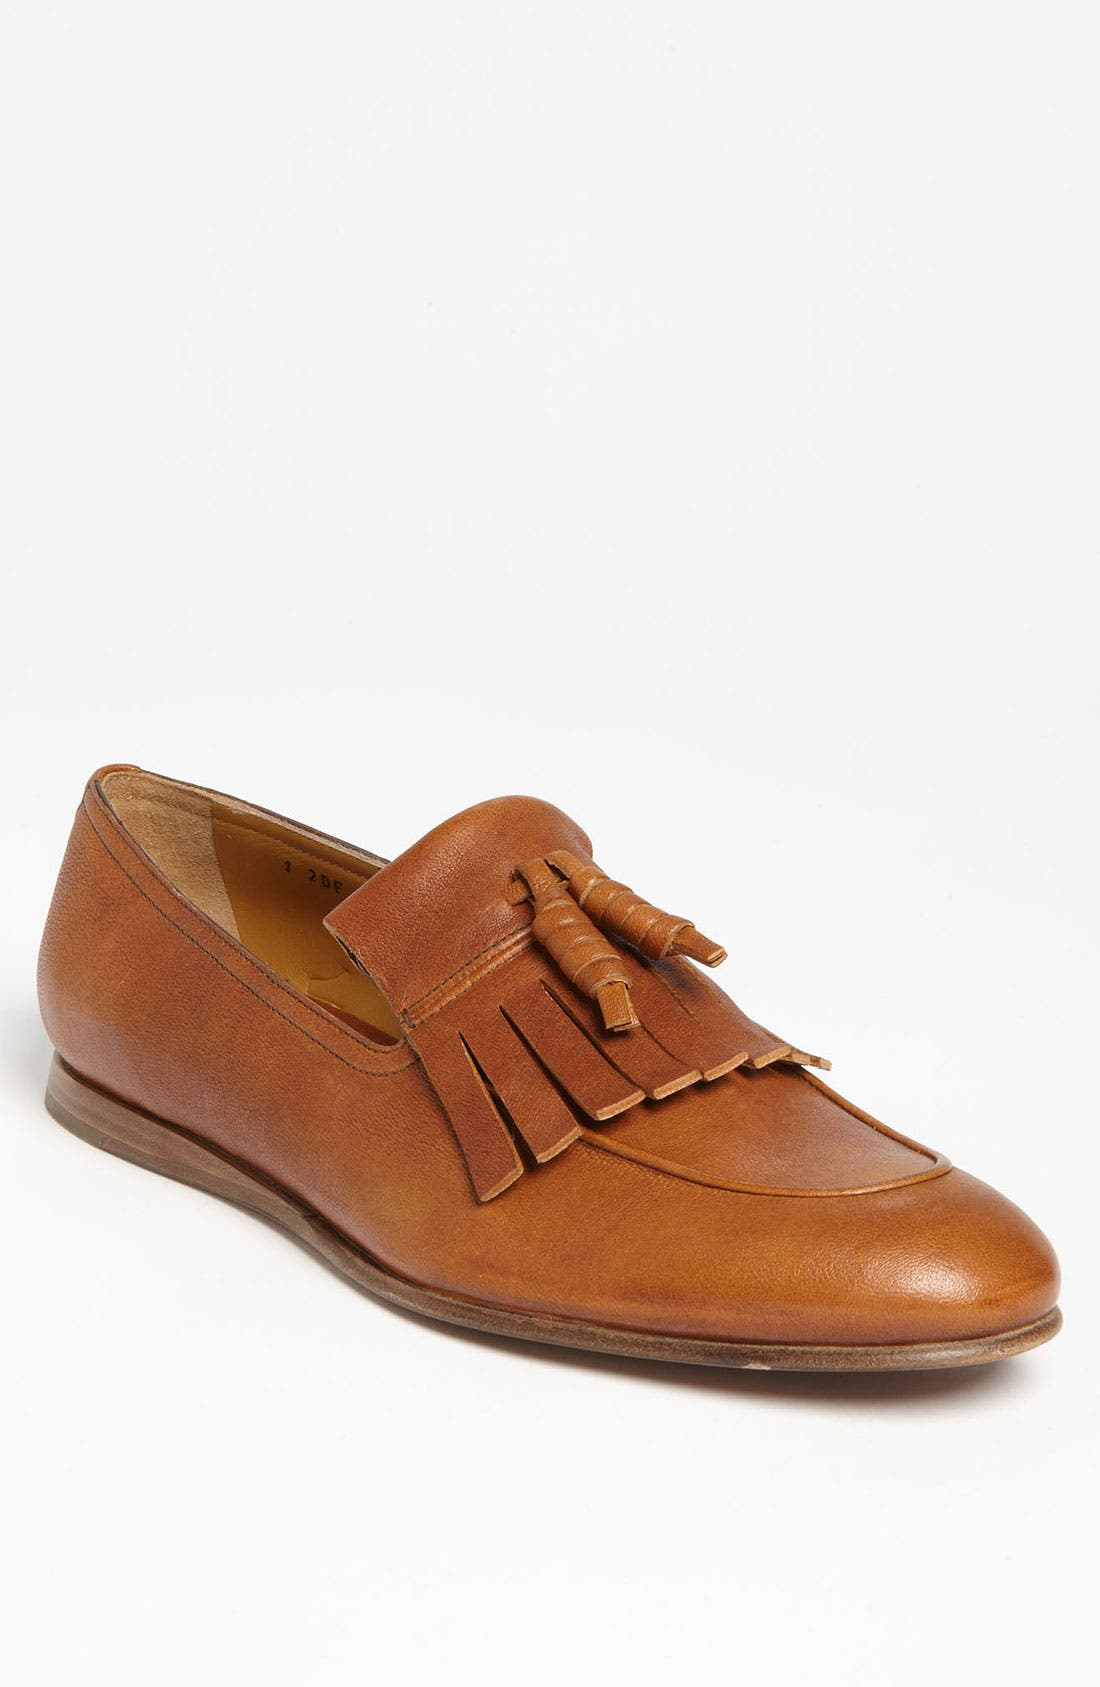 Alternate Image 1 Selected - Prada Kiltie Loafer